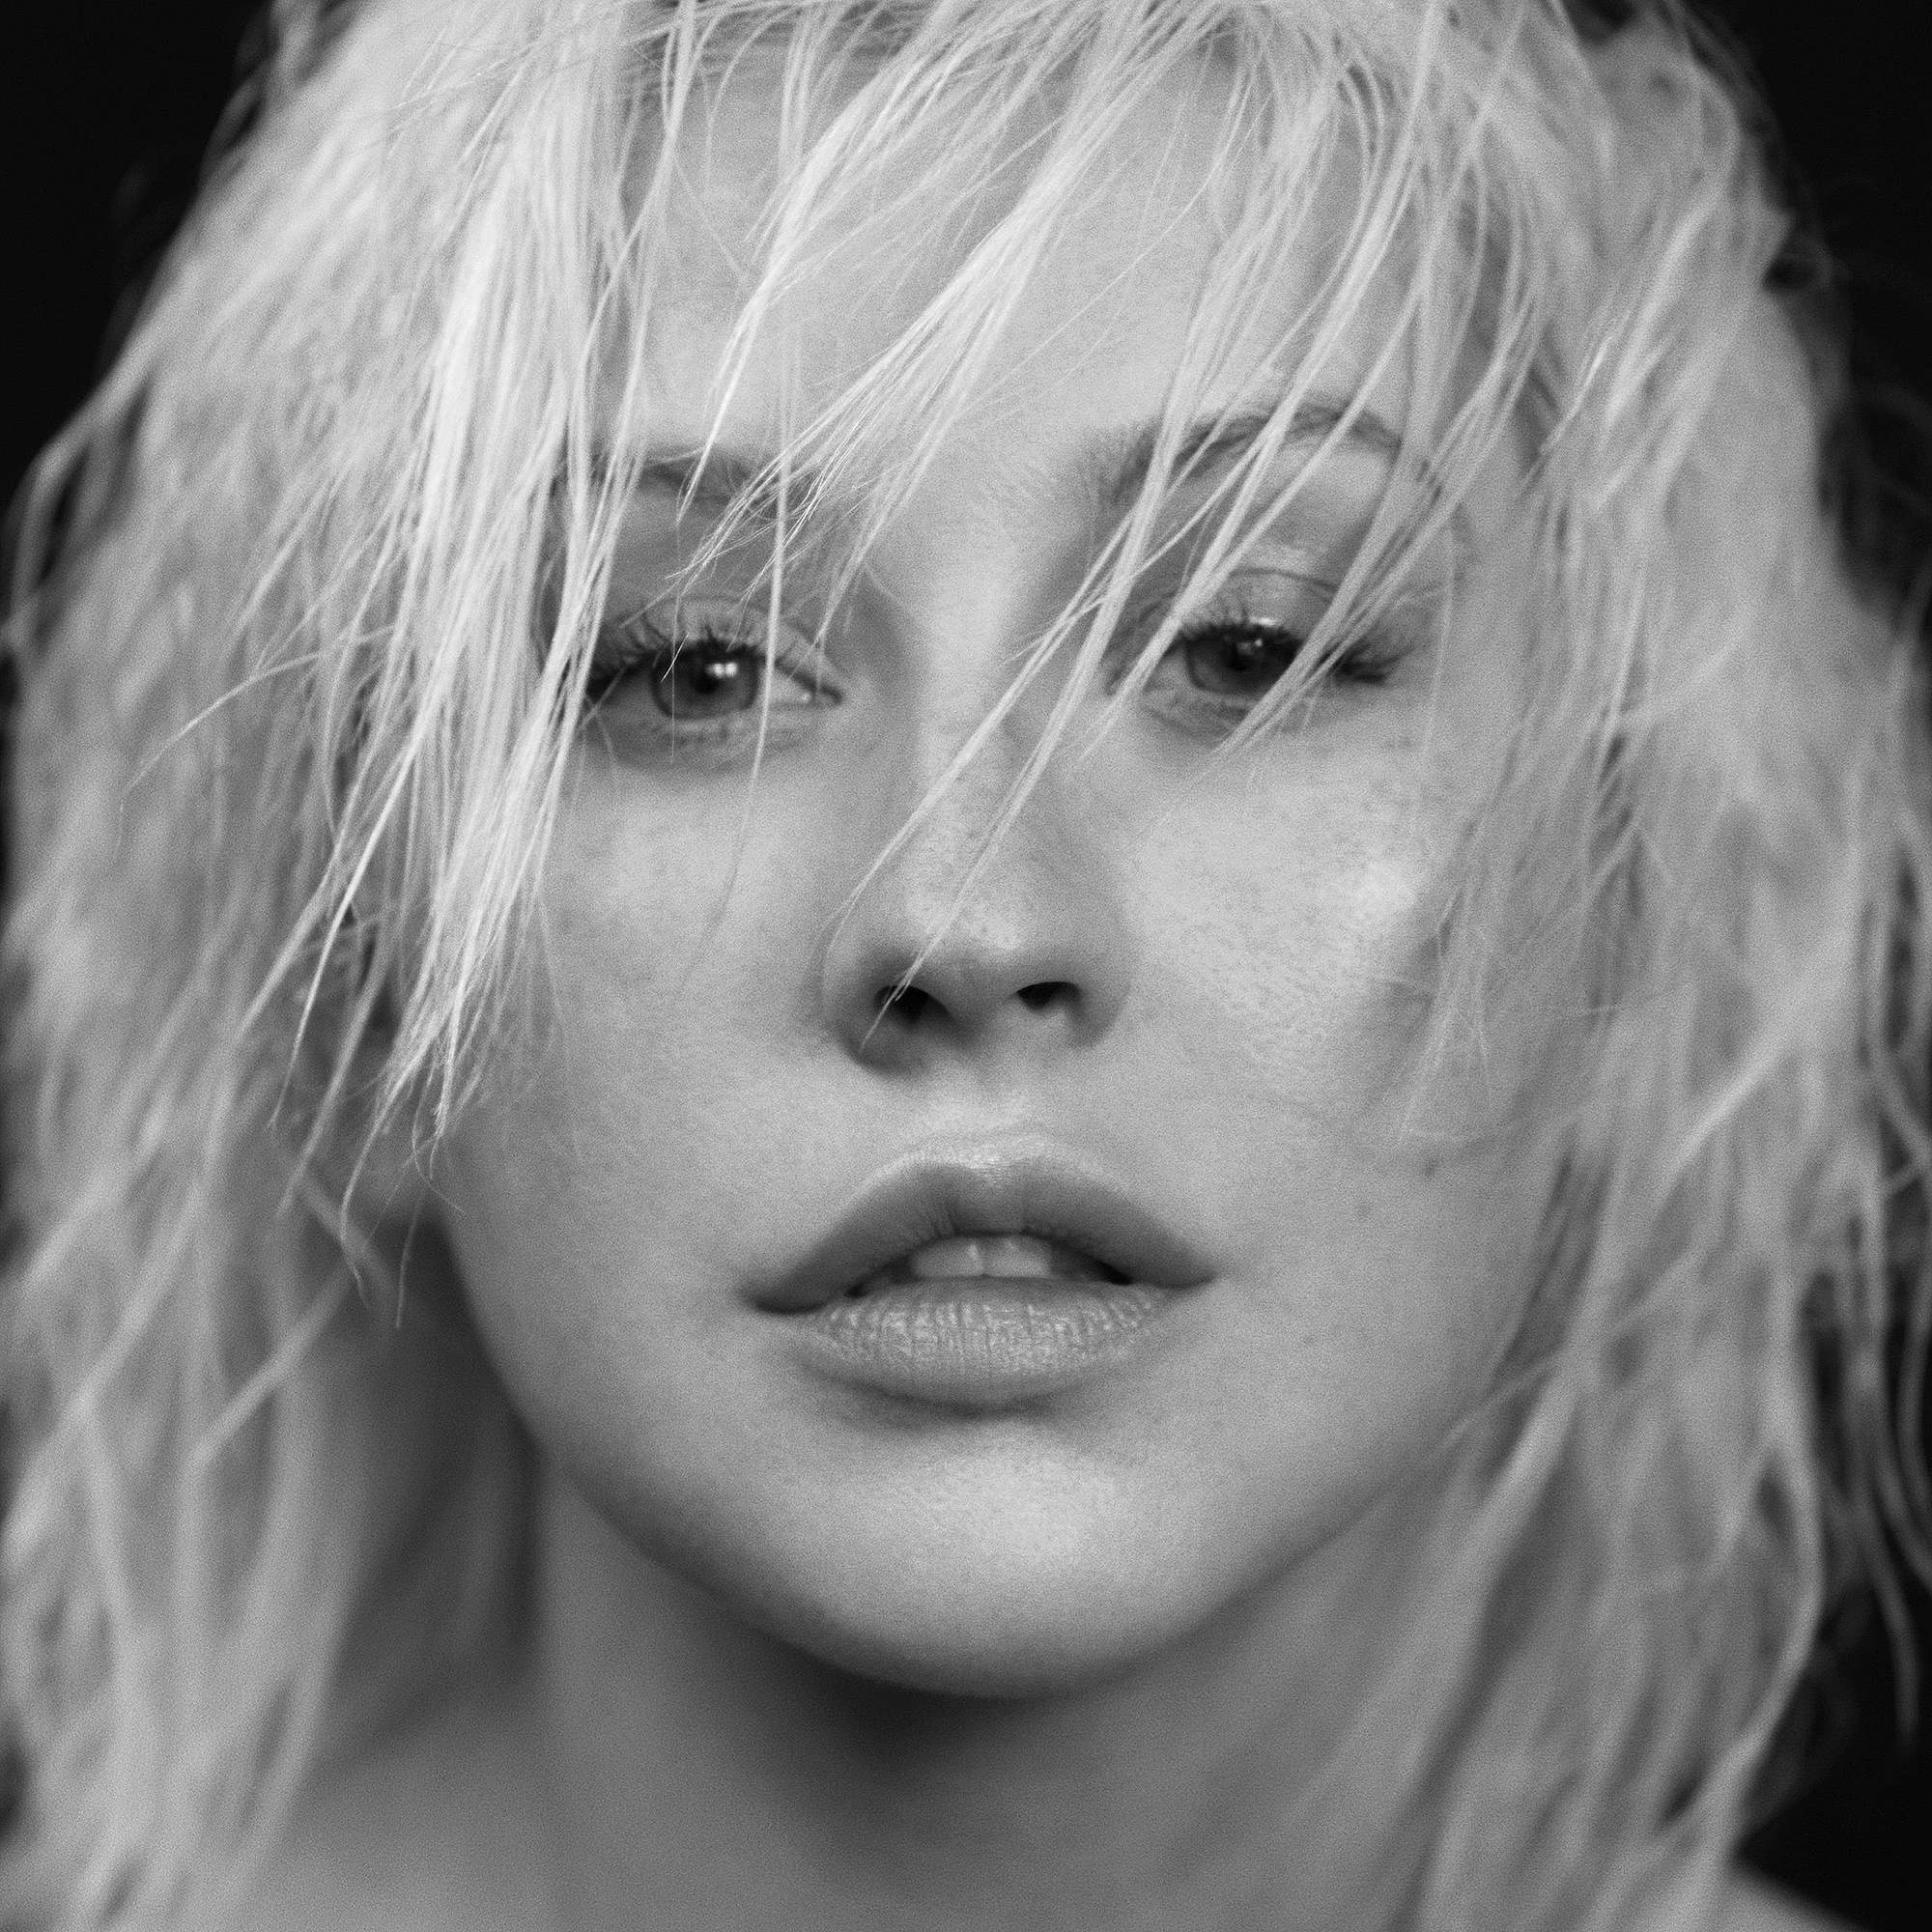 stingray-blog-christina-aguilera-liberation